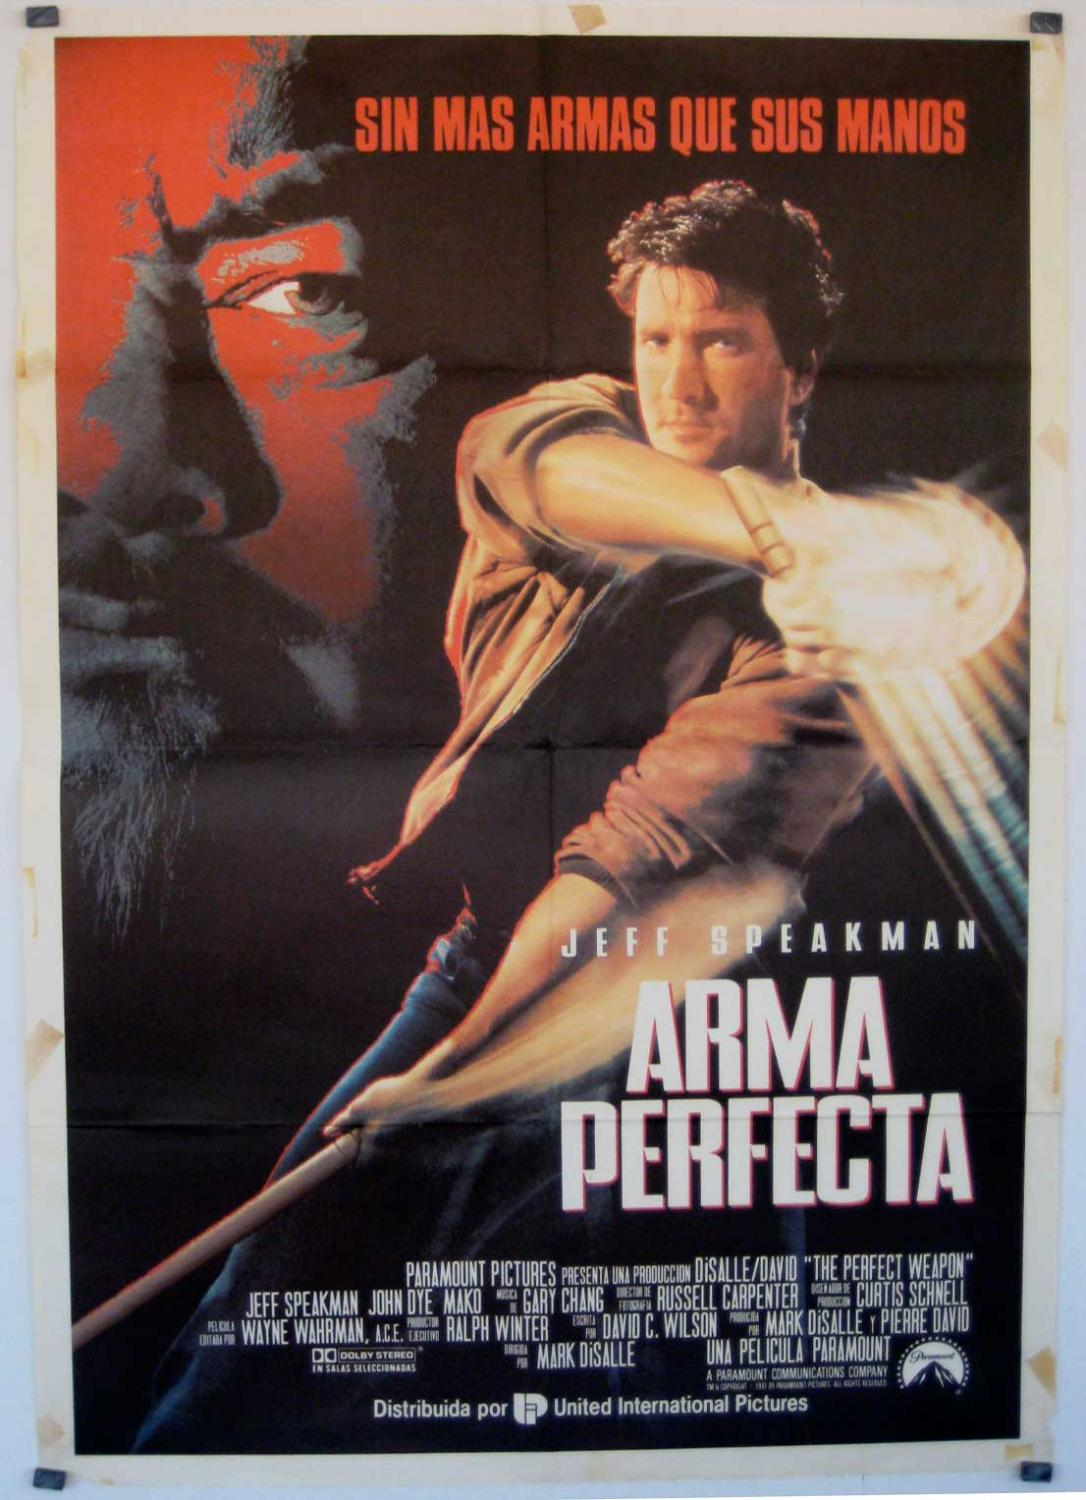 The Perfect Weapon MOVIE POSTER/ARMA PERFECTA/POSTER